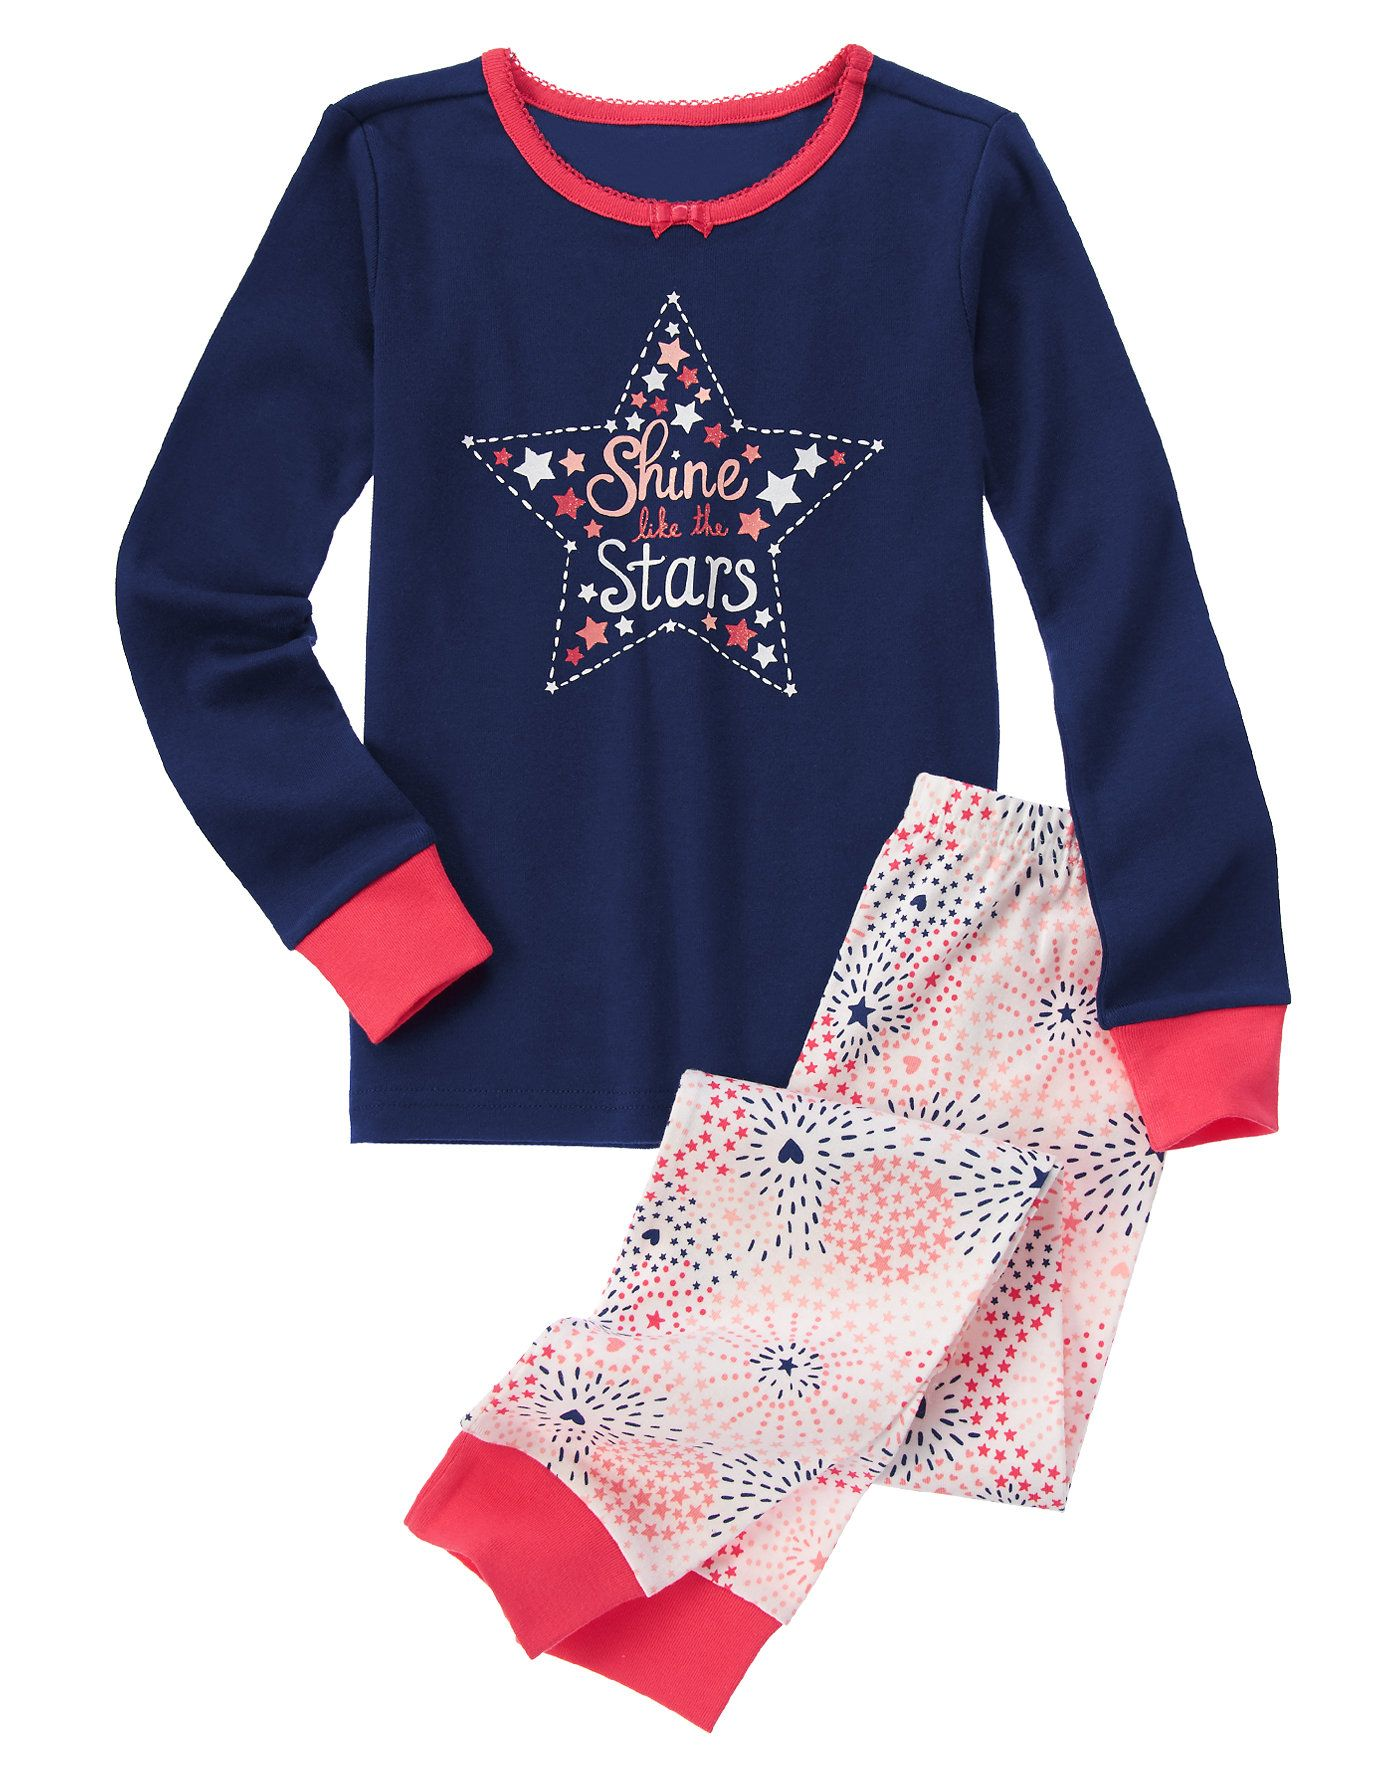 Shine Like The Stars Two-Piece Gymmies® at Gymboree  e9c5ba3d2